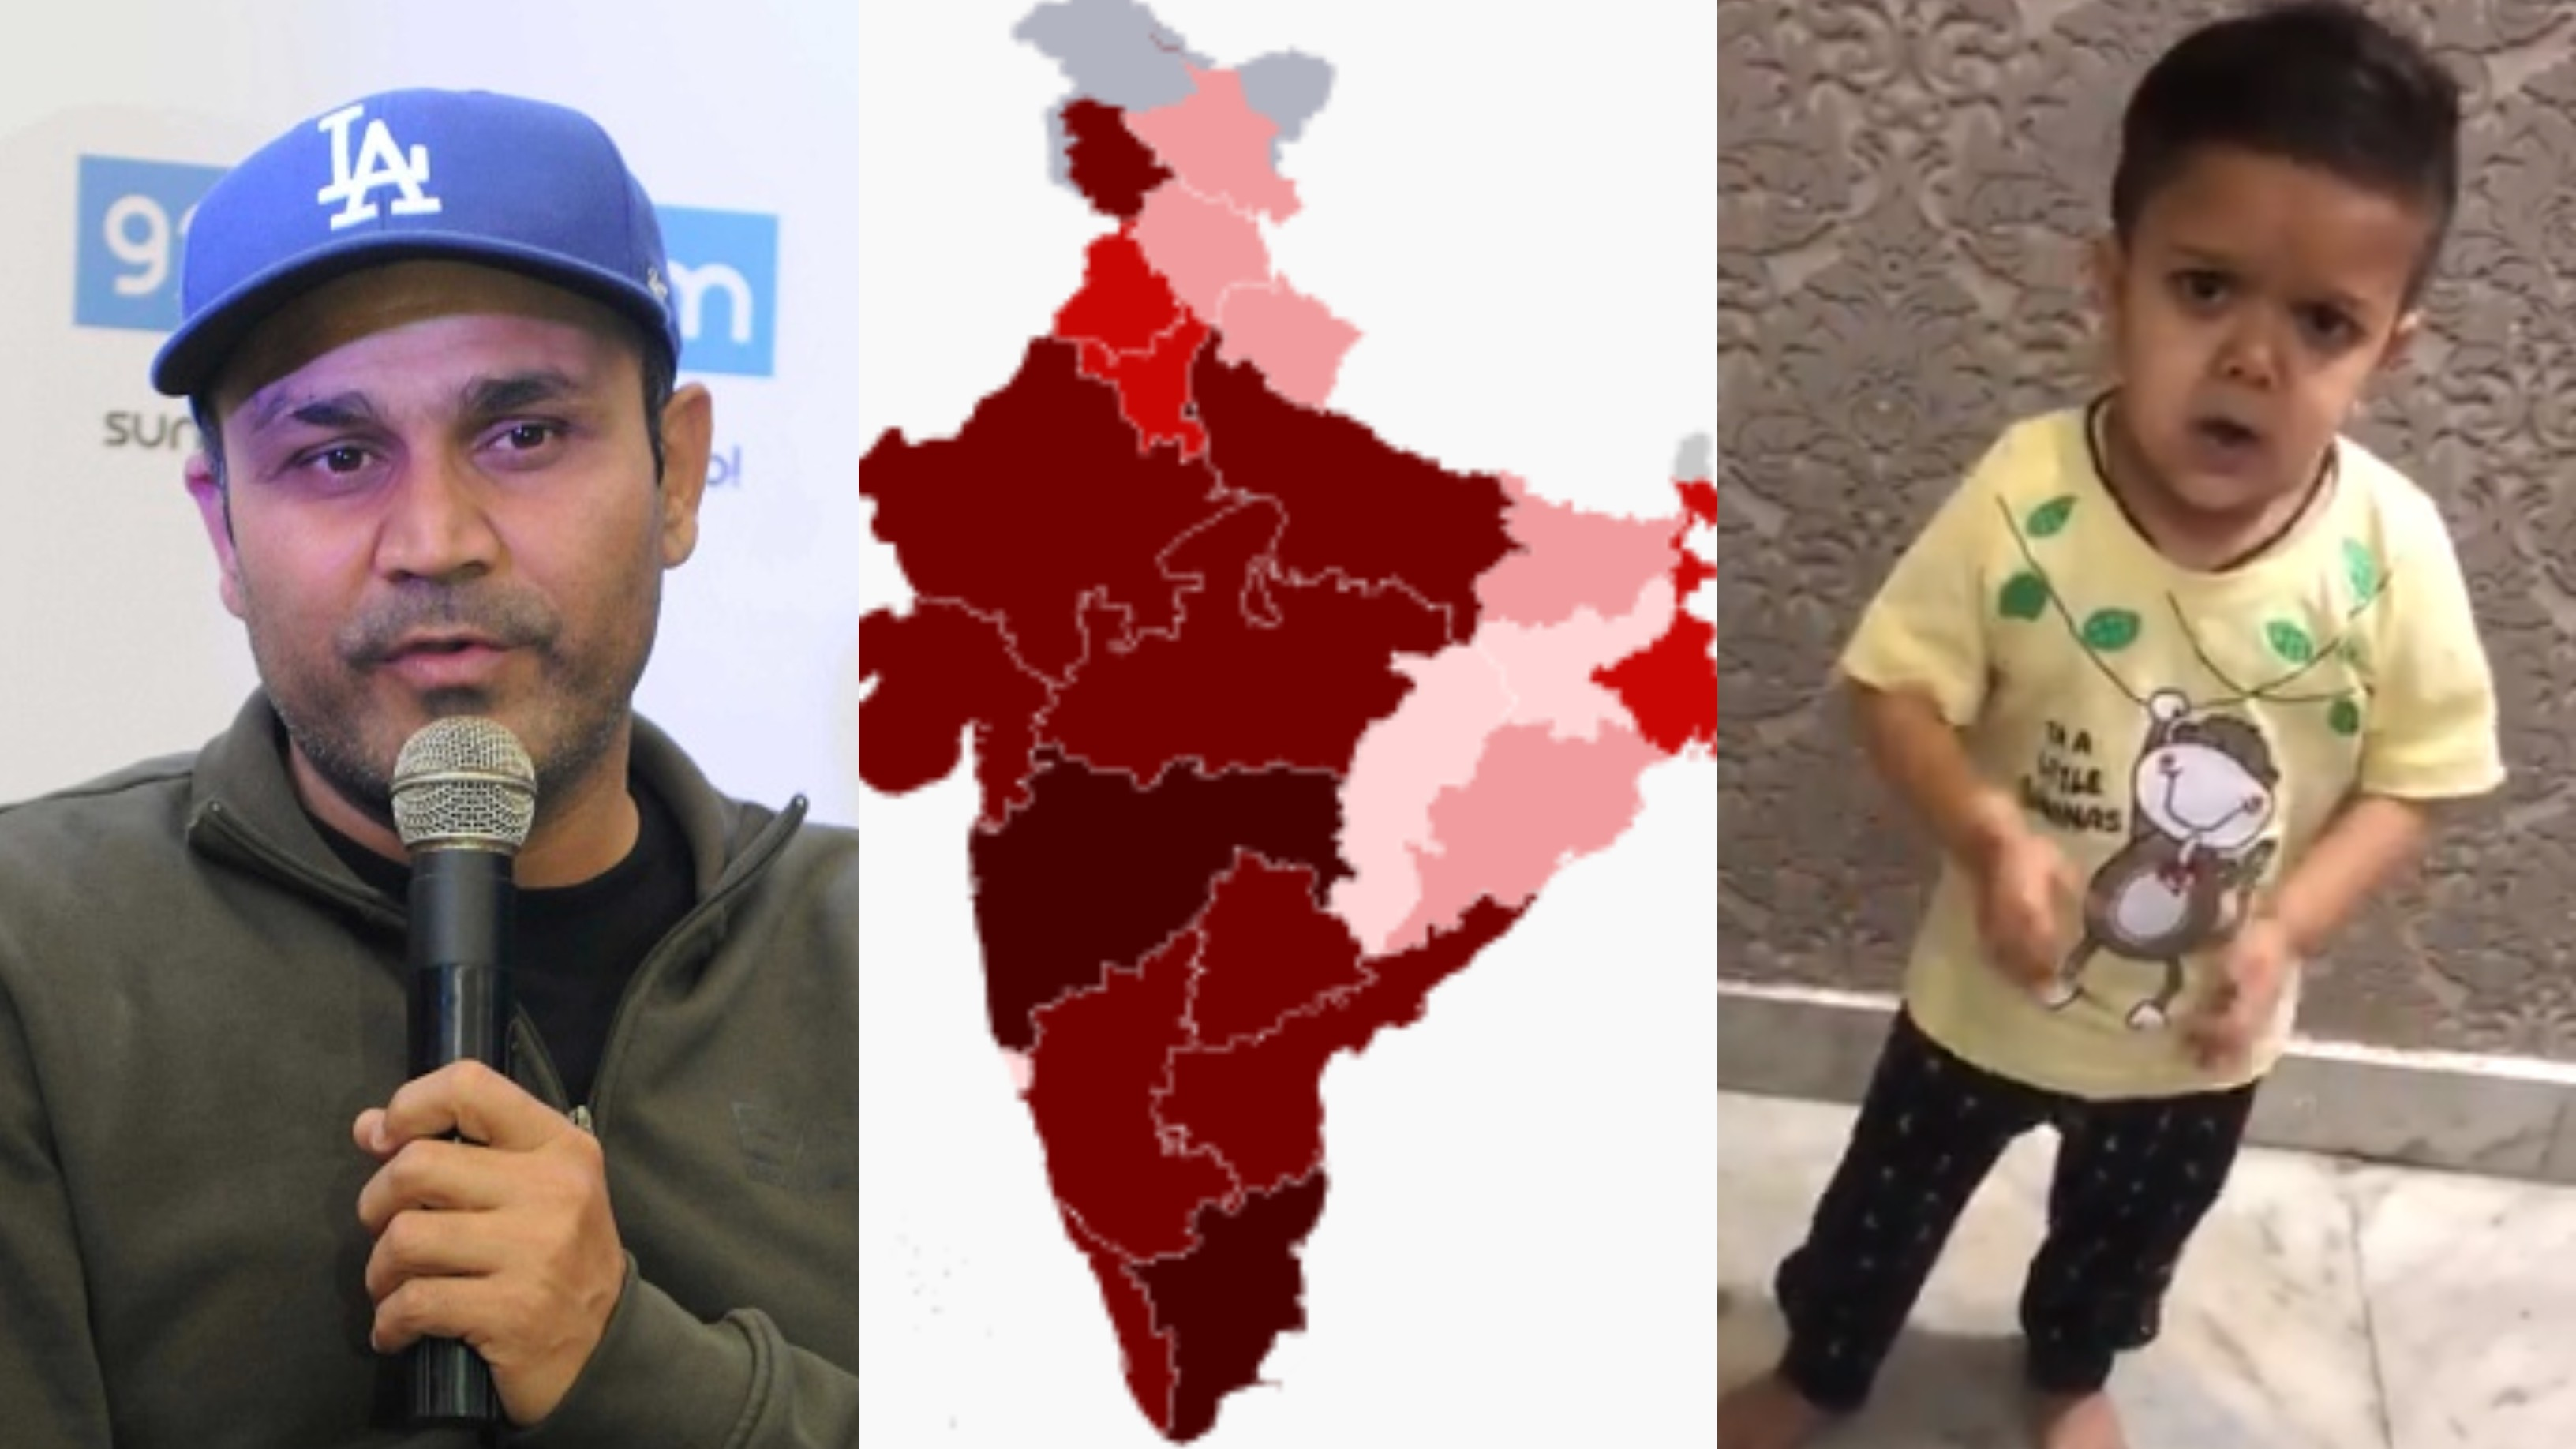 WATCH - Virender Sehwag shares an important message by a child; urges people to listen and follow